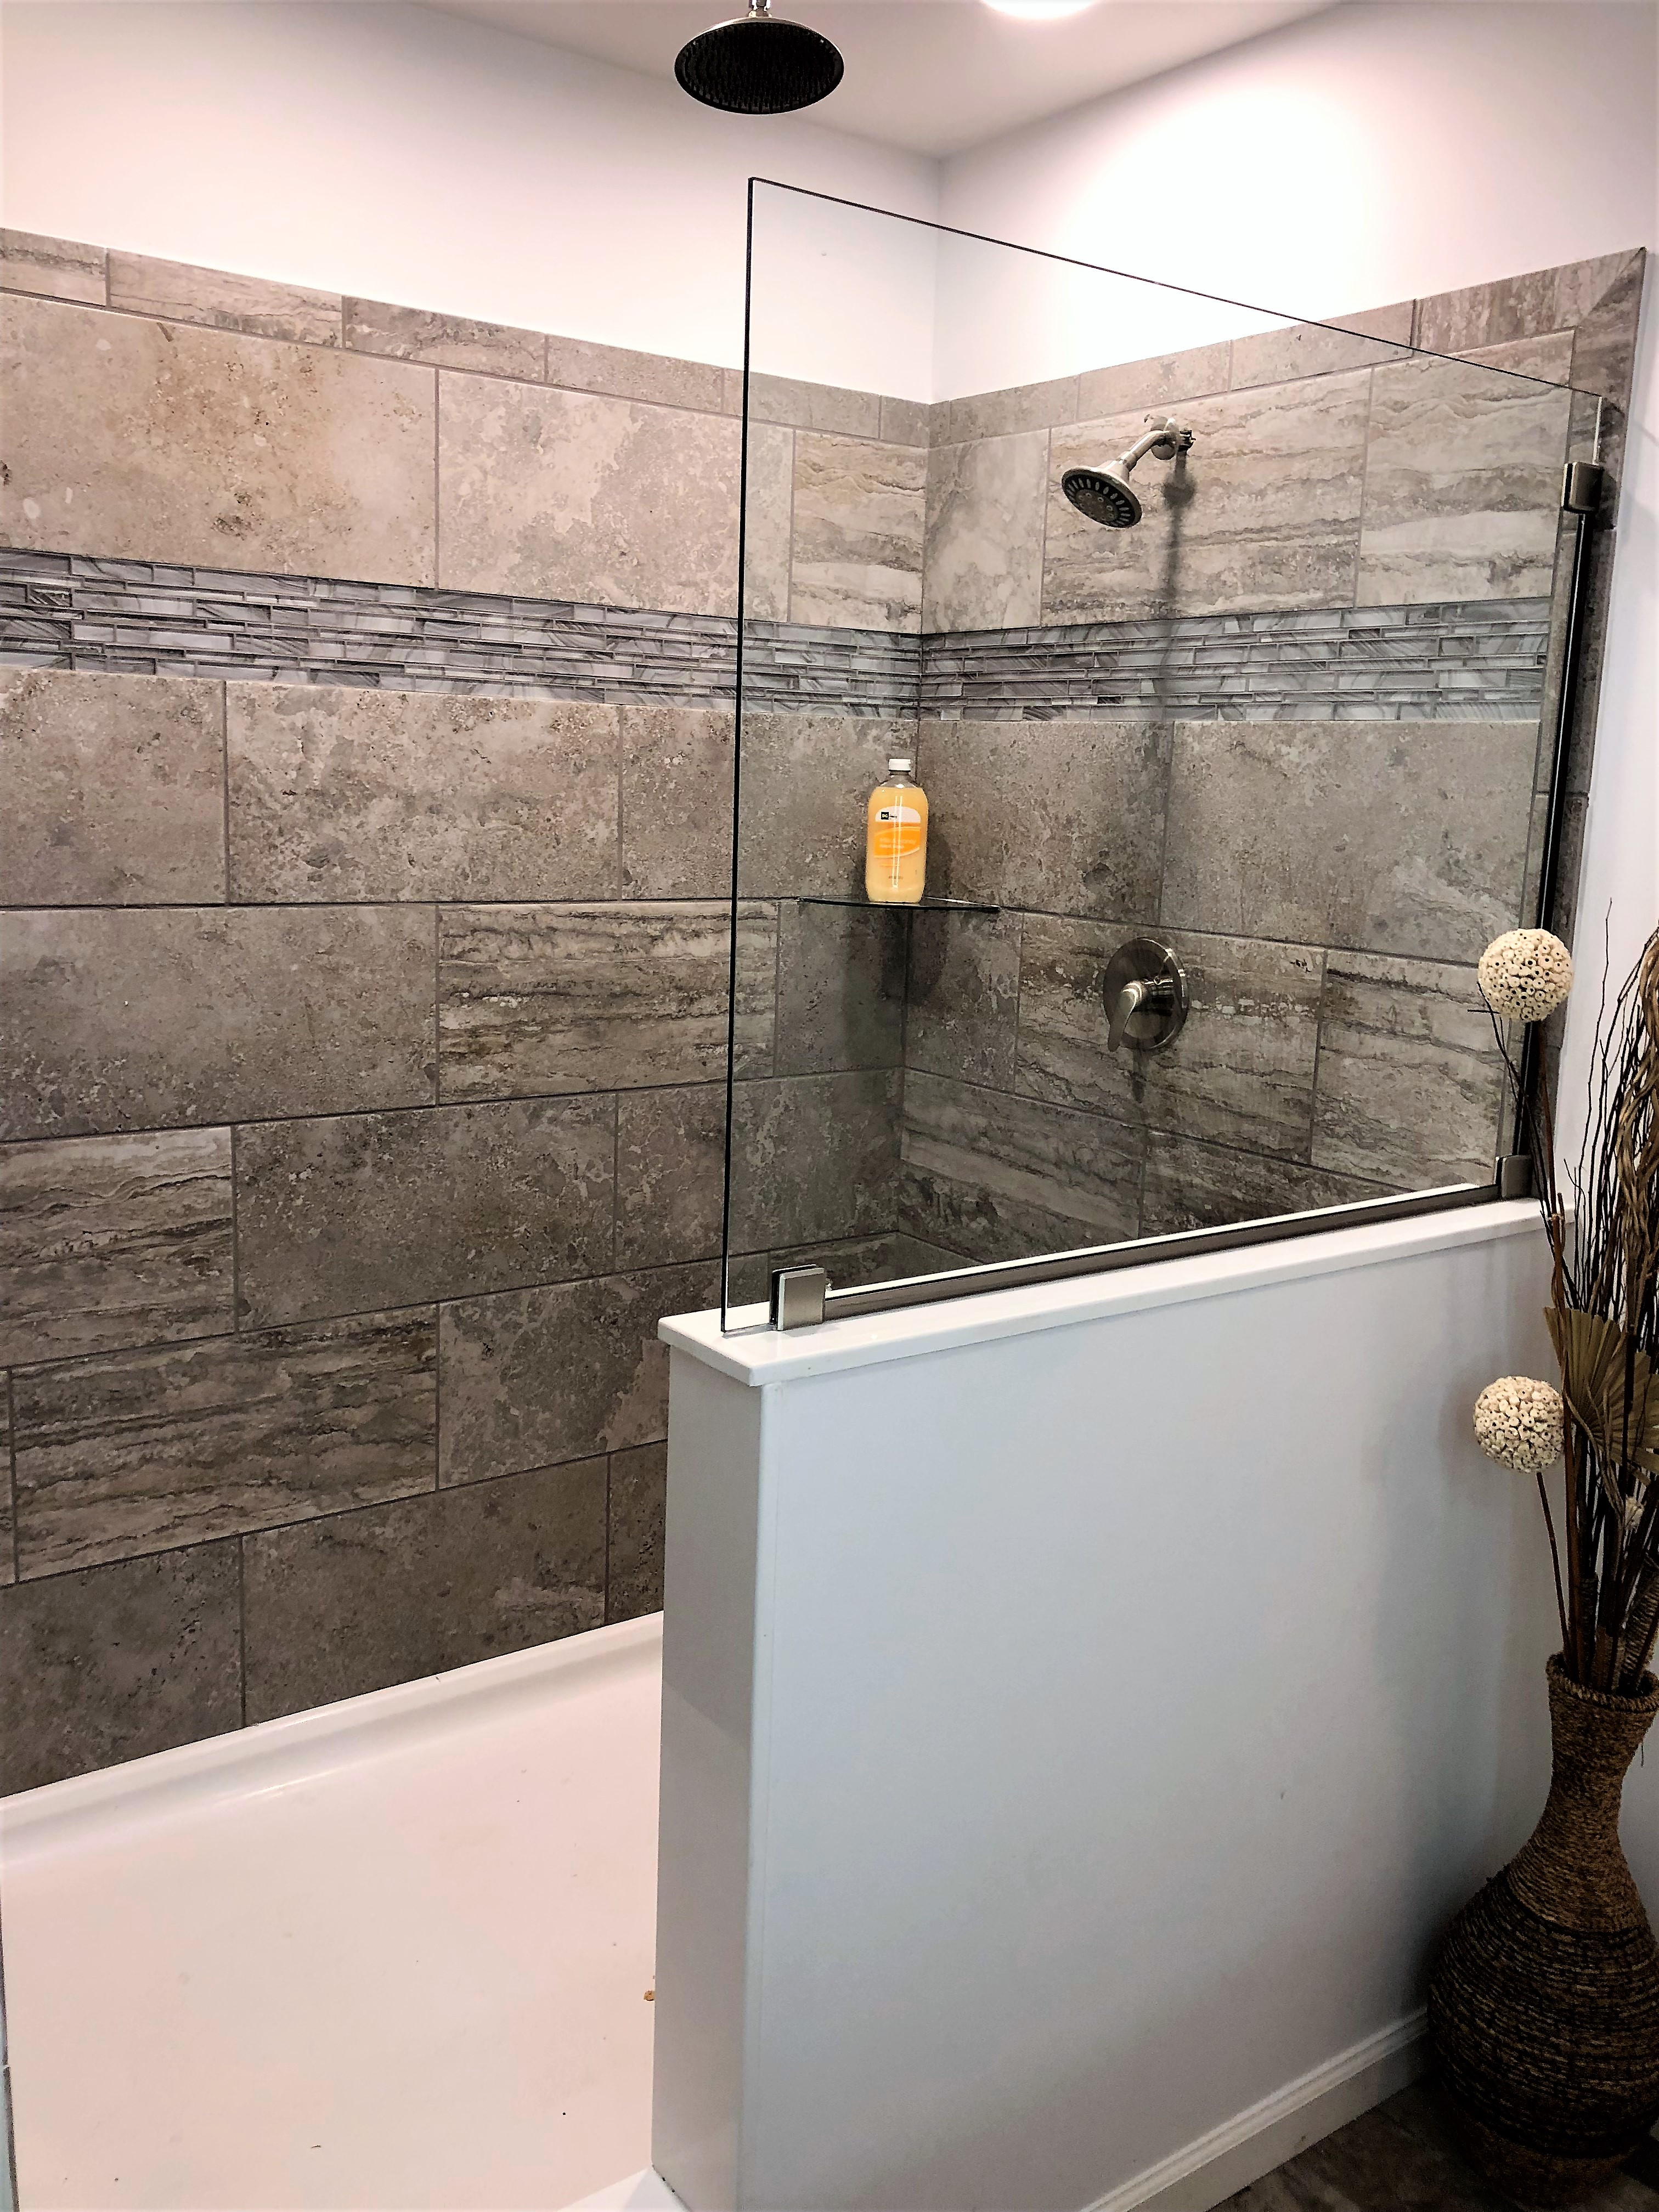 6' Ceramic Tile Shower With Rainfall Shower Head